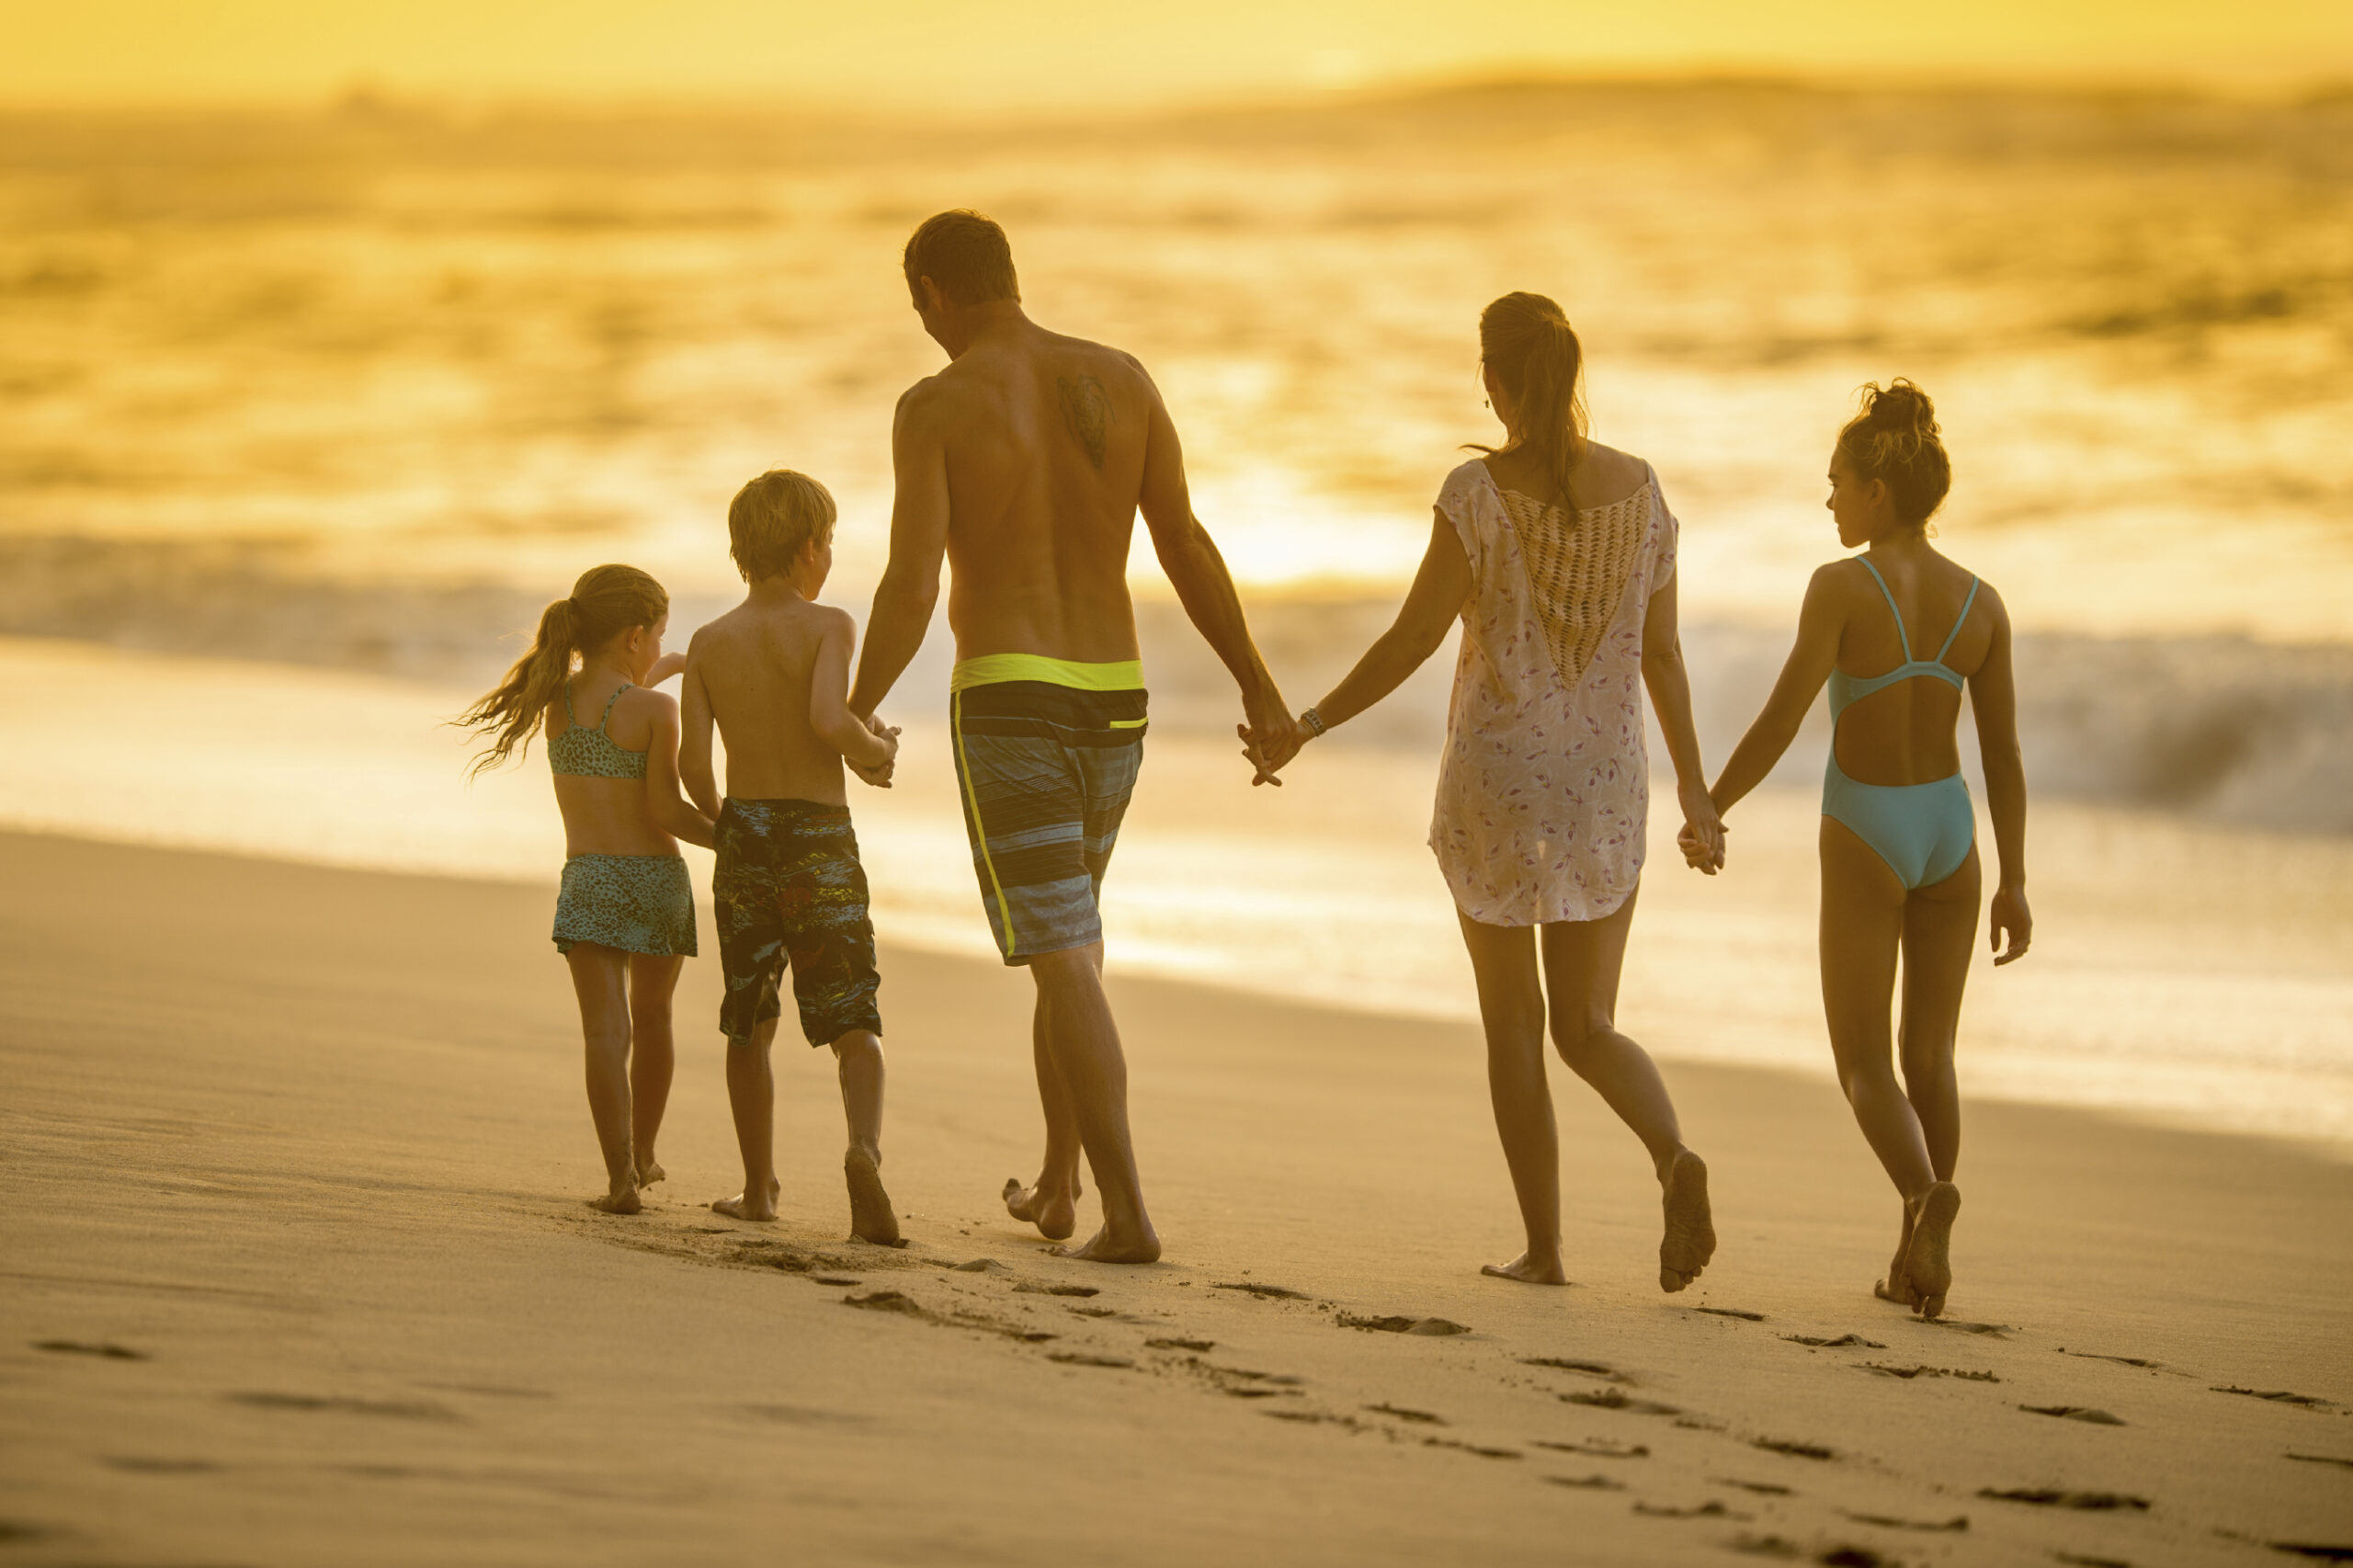 A family of five walking together down the beach